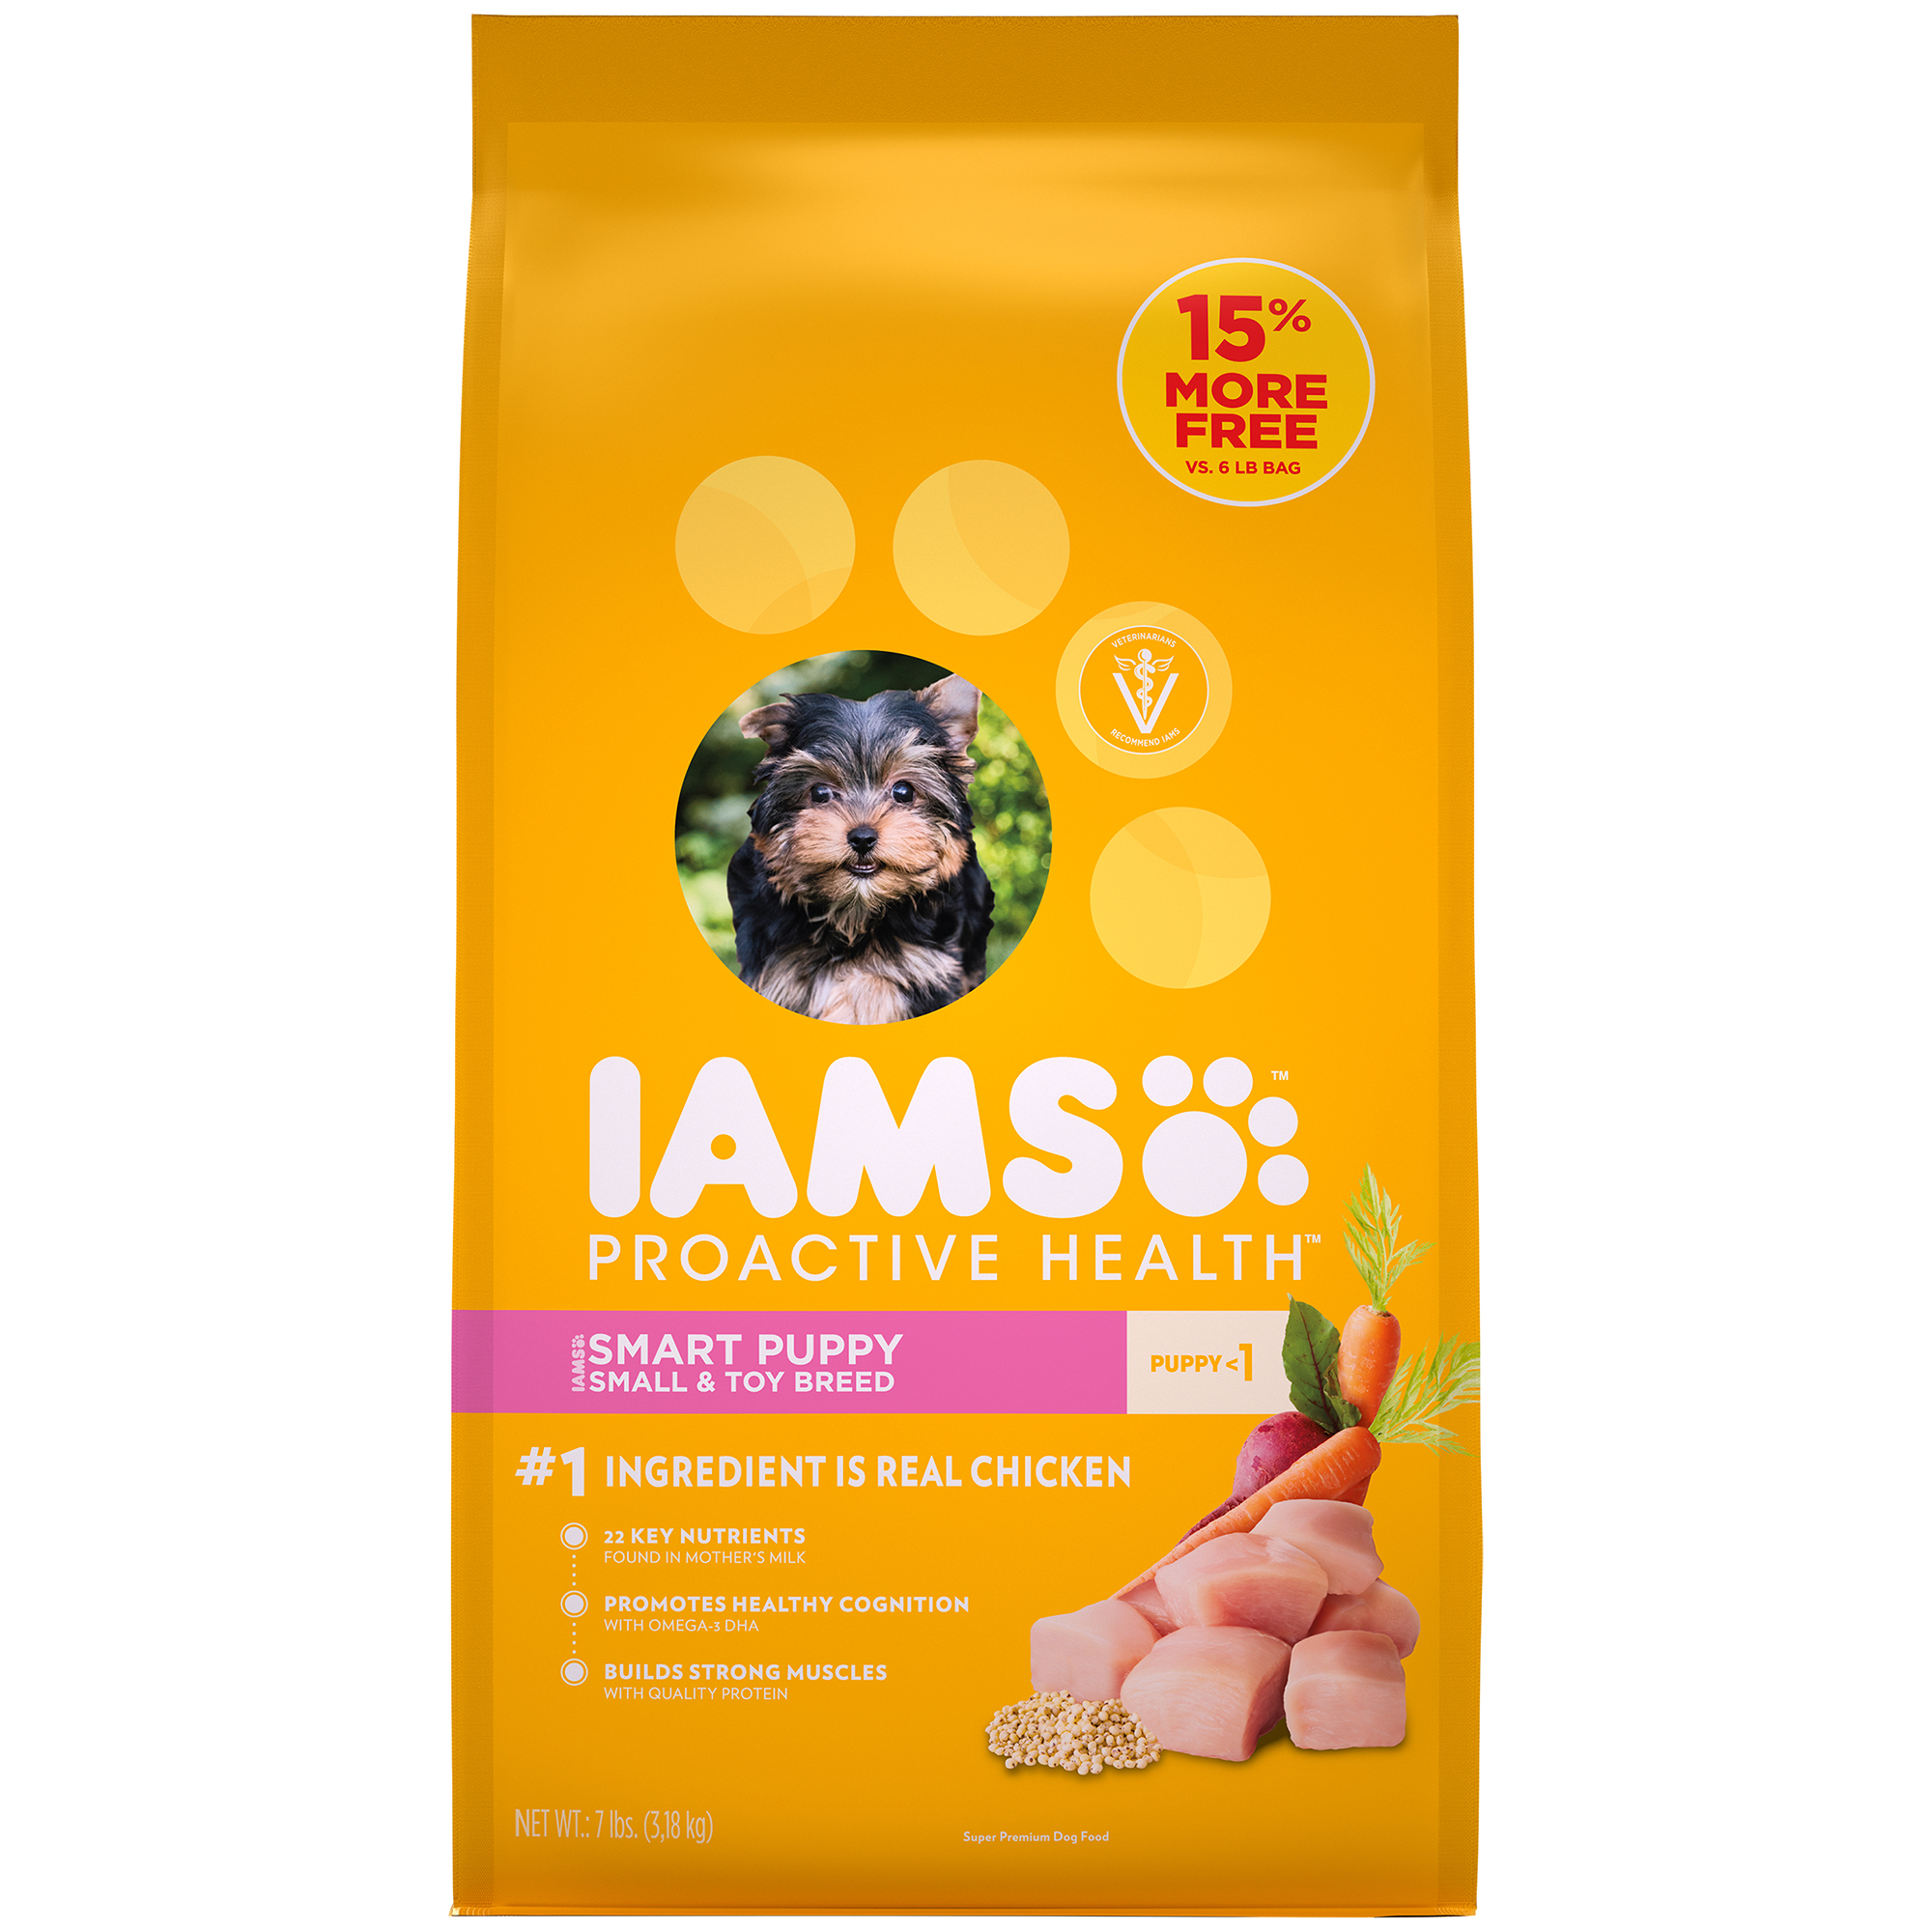 IAMS ProActive Health Smart Puppy Dry Dog Food for Small & Toy Dogs – Chicken, 7 Pound Bag